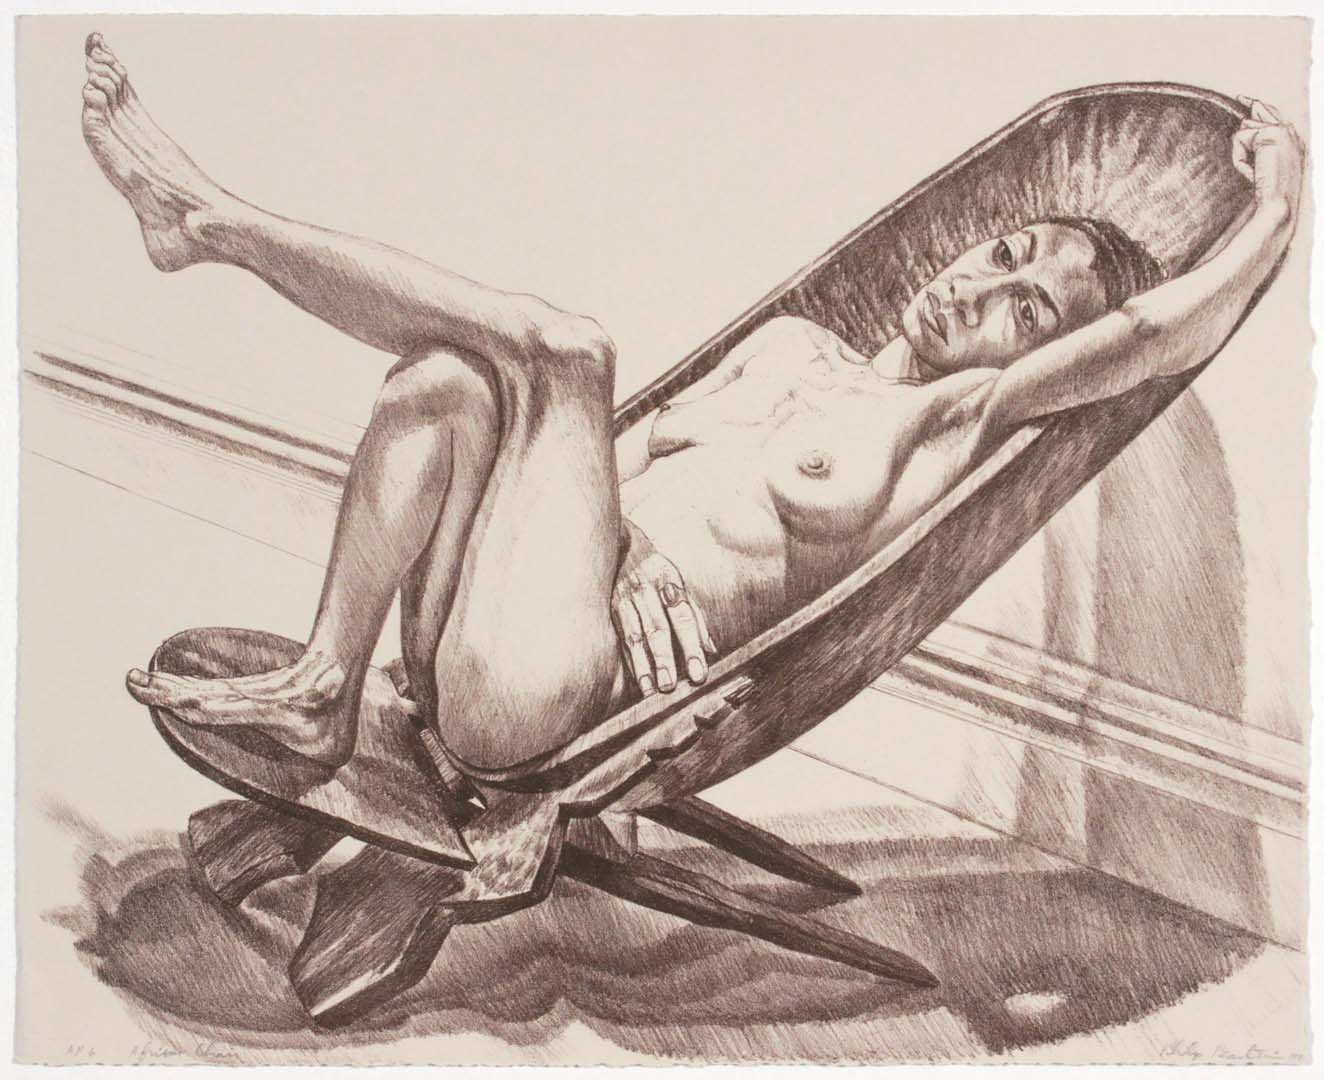 1980 African Chair Lithograph on Paper 16.5 x 20.5